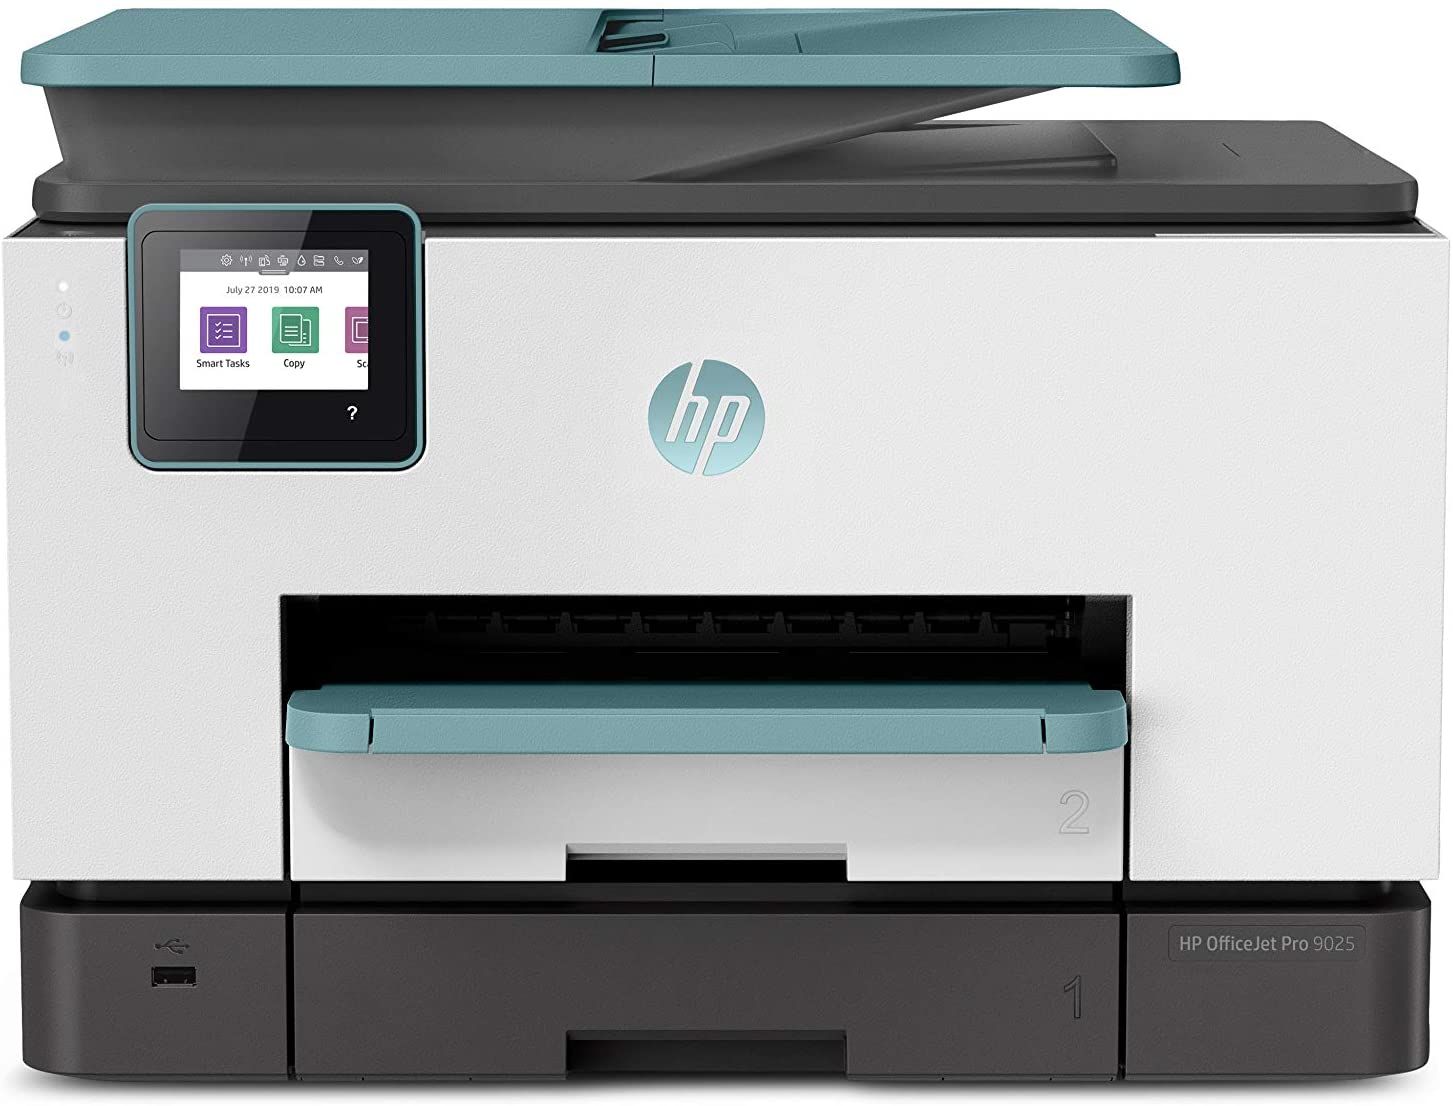 HP OfficeJet Pro 9025 All-in-One Wireless Printer, Instant Ink Ready with 2 Months Trial Included, Print, Scan, Copy uk reviews